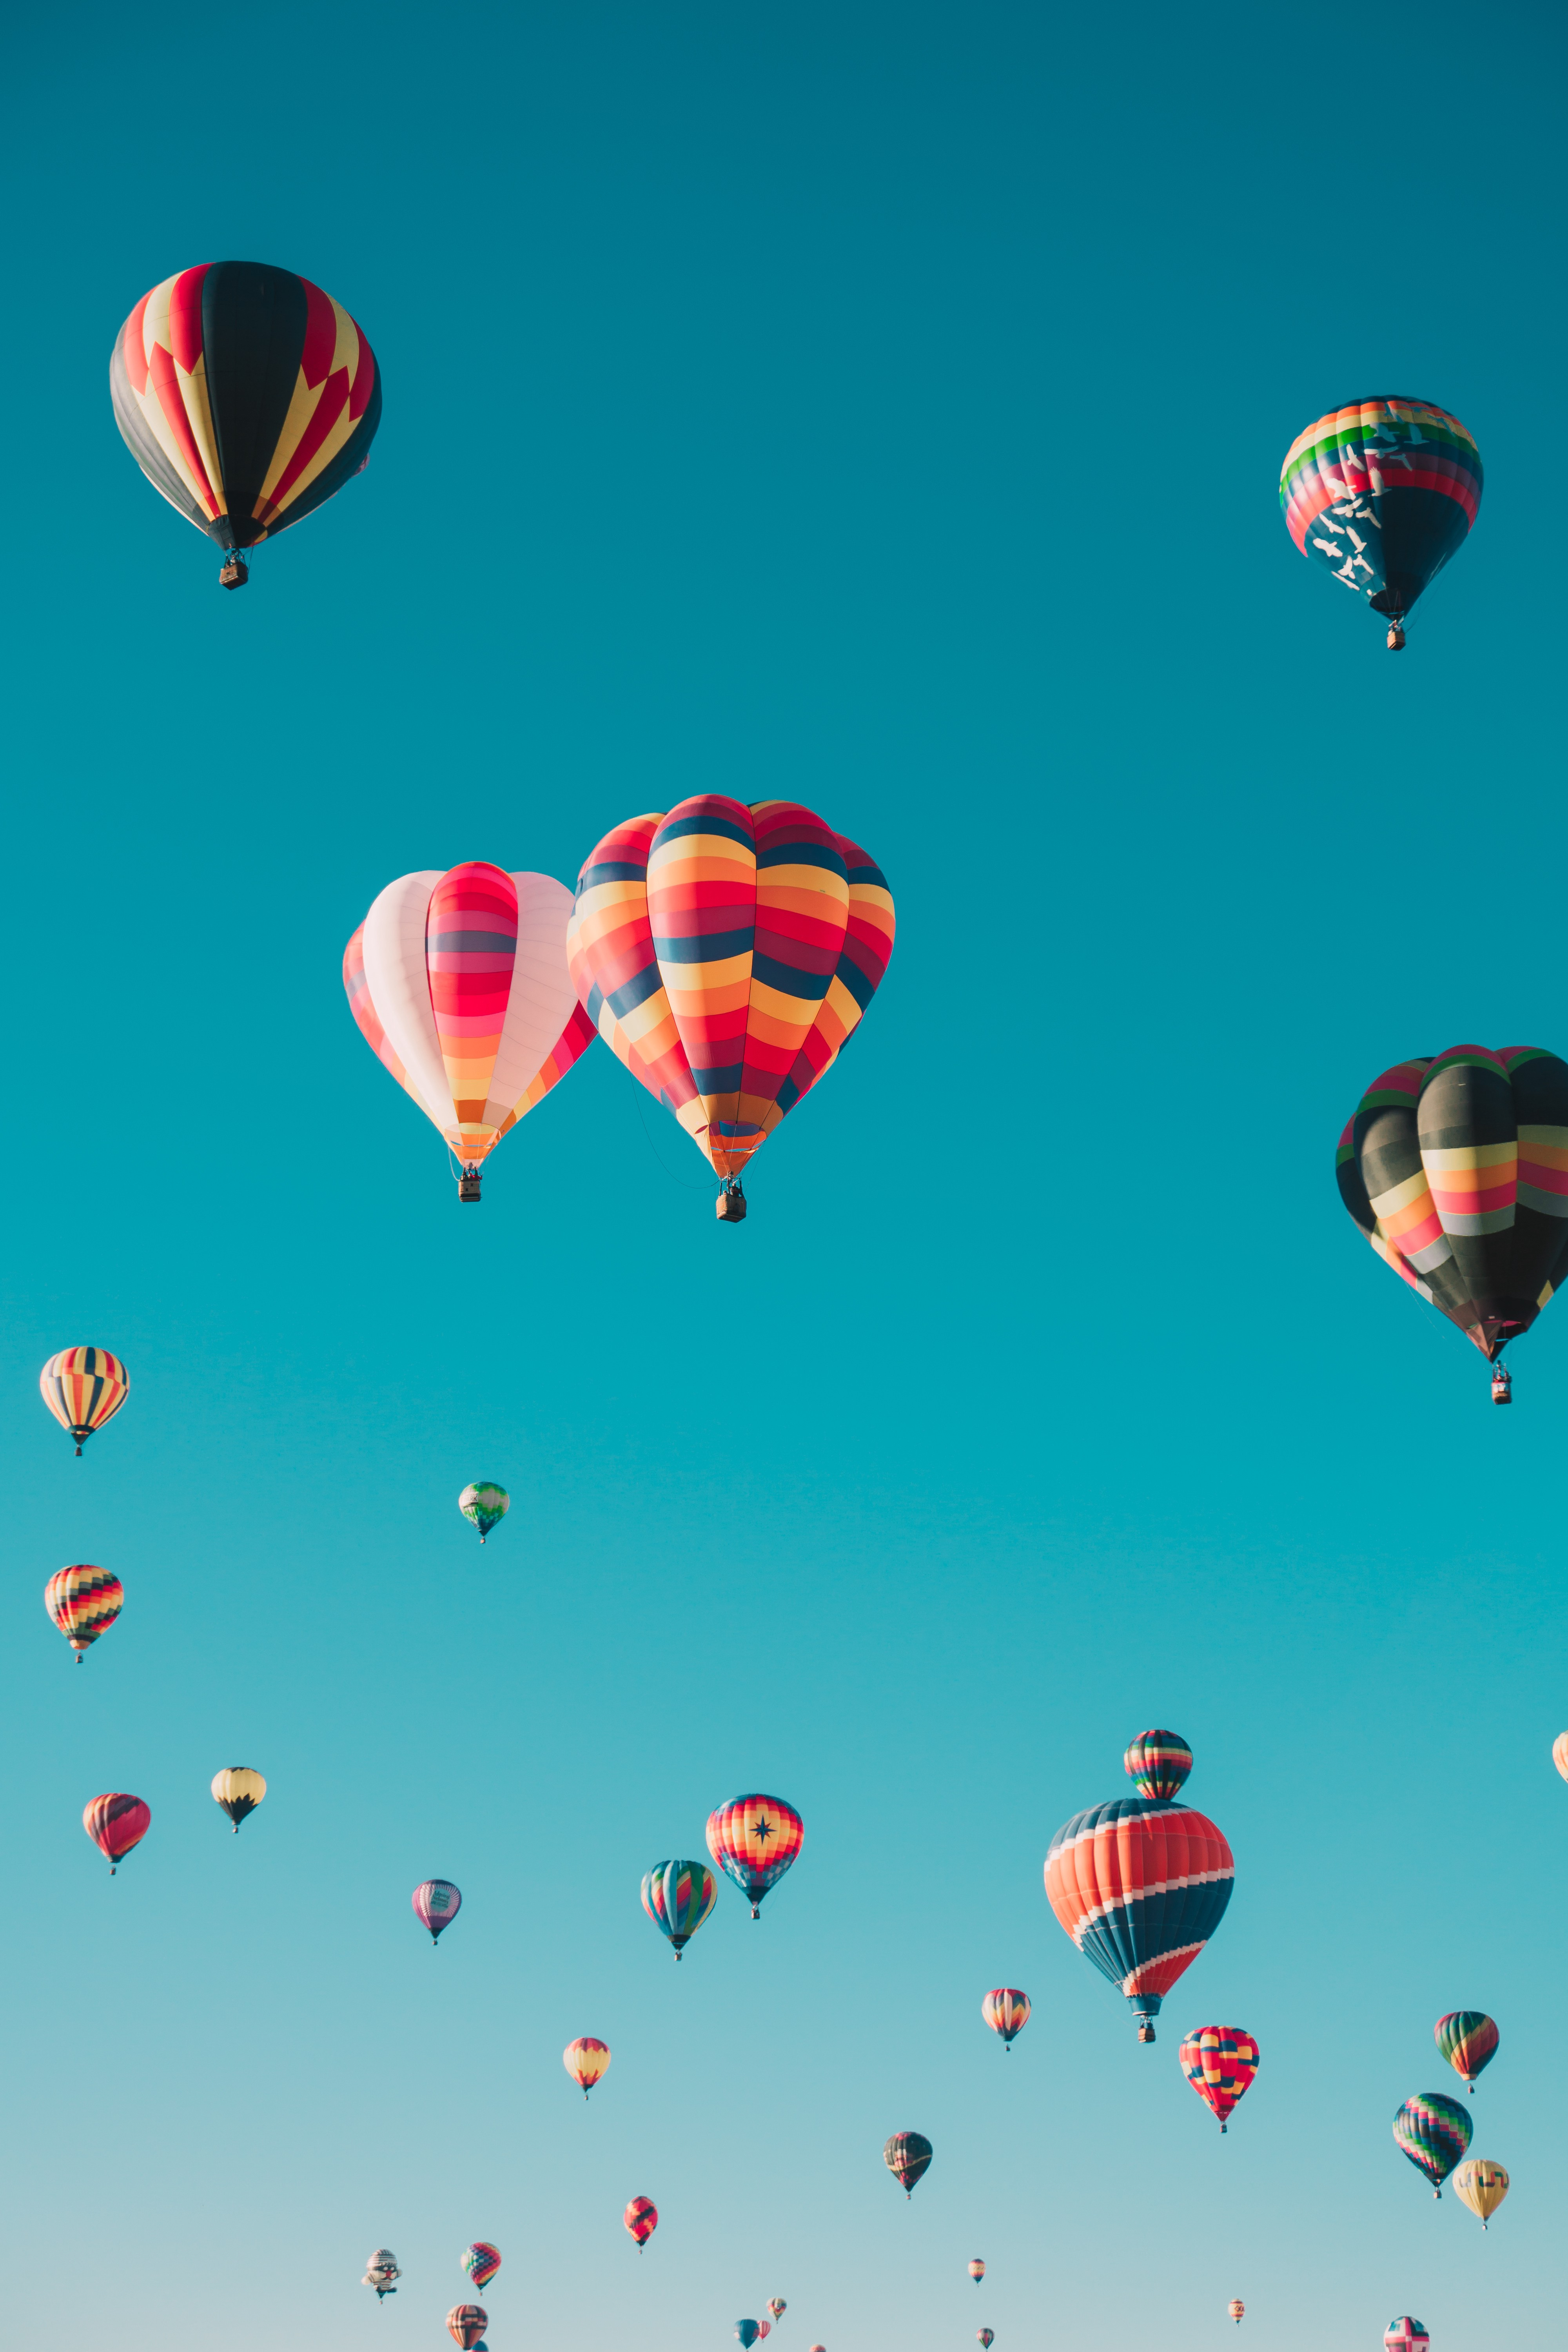 A blue sky with multiple hot air balloons flying in the air.